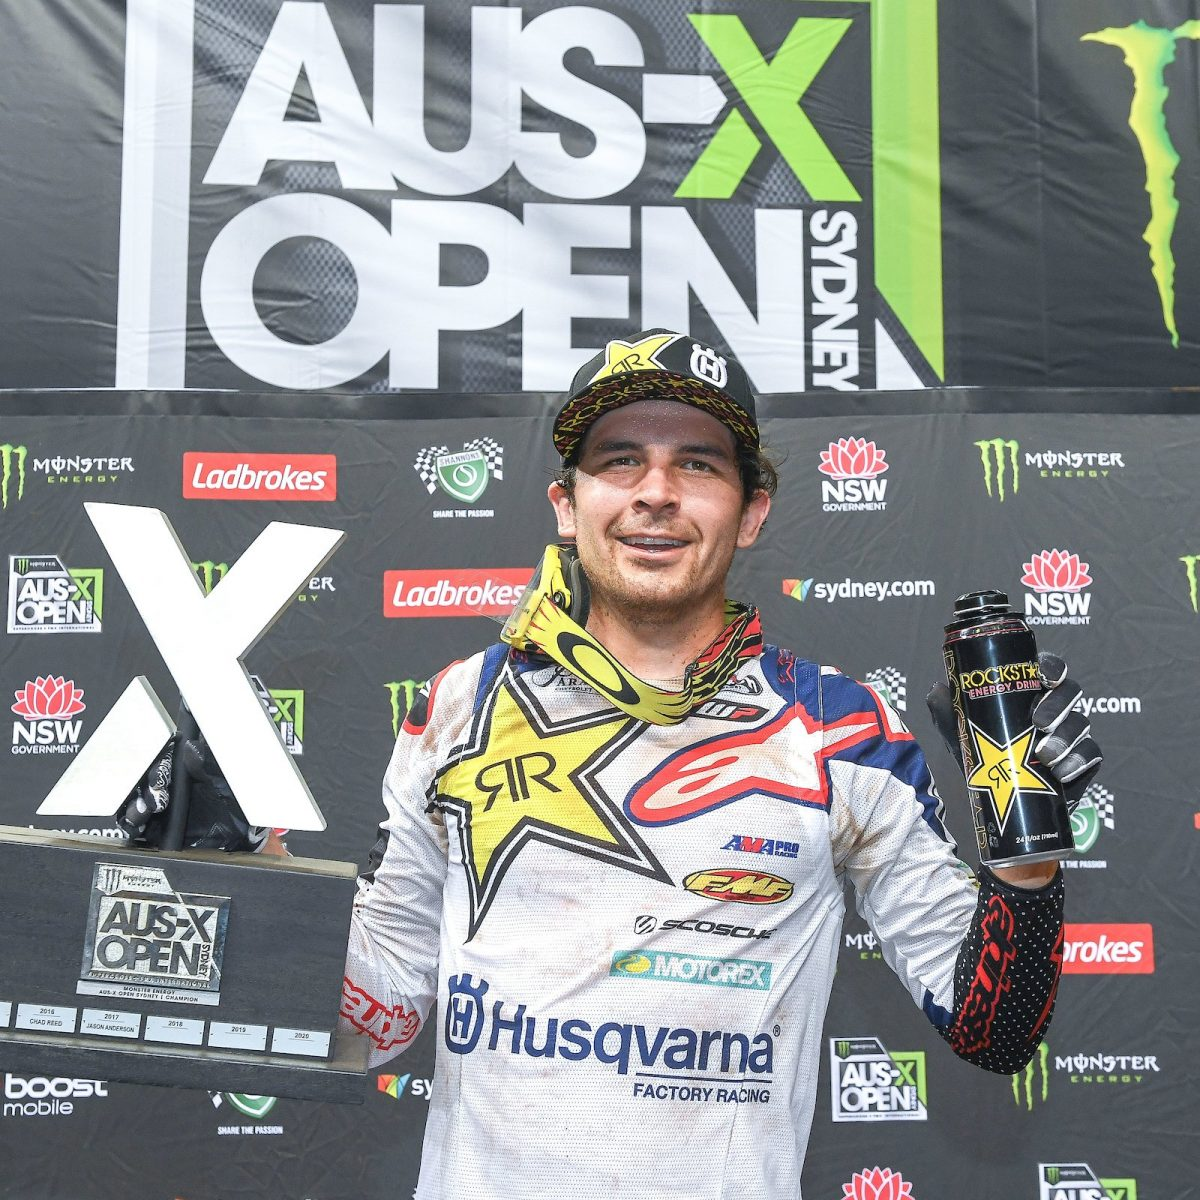 Jason Anderson – Rockstar Energy Husqvarna Factory Racing